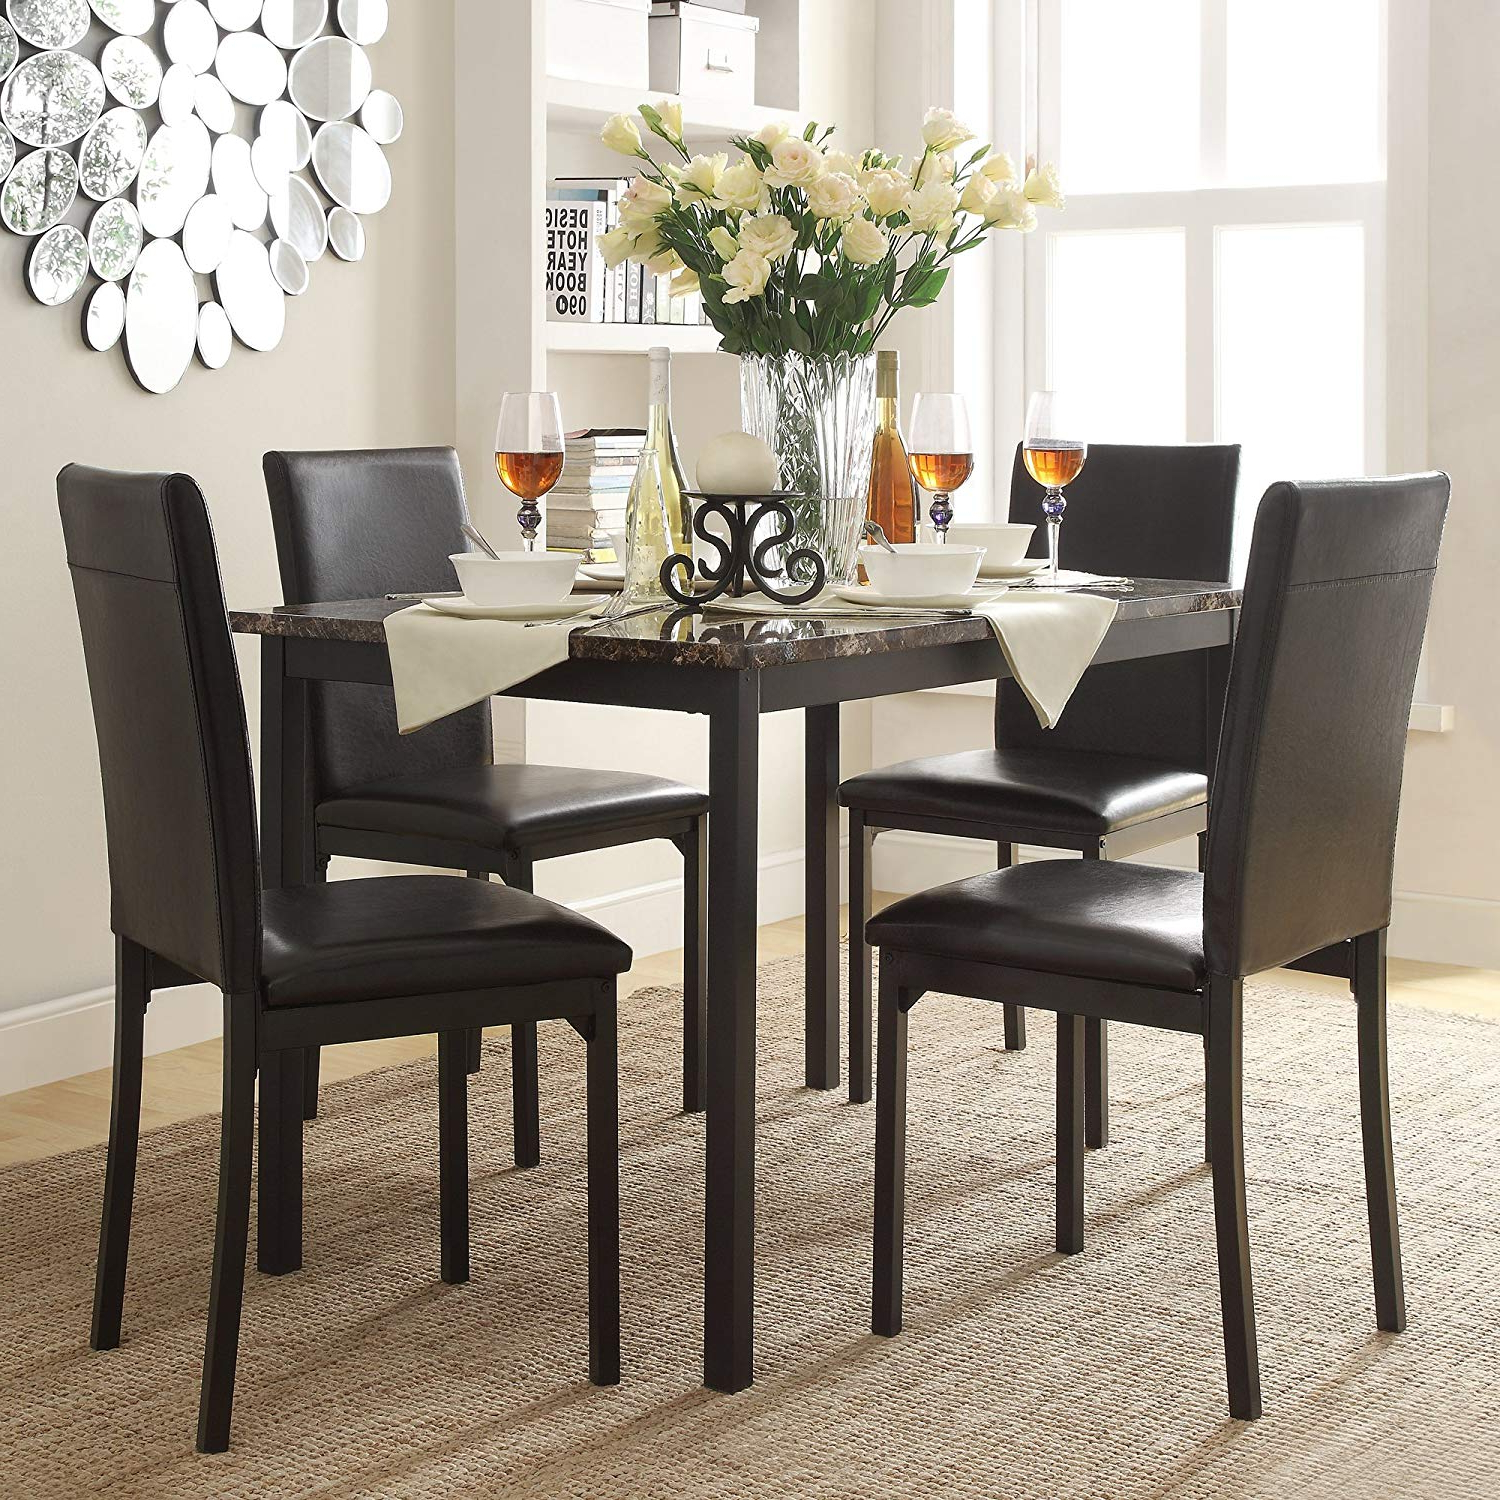 Faux Marble Finish Metal Contemporary Dining Tables Within Most Current Amazon – Faux Marble Table And 4 Faux Leather (View 2 of 25)